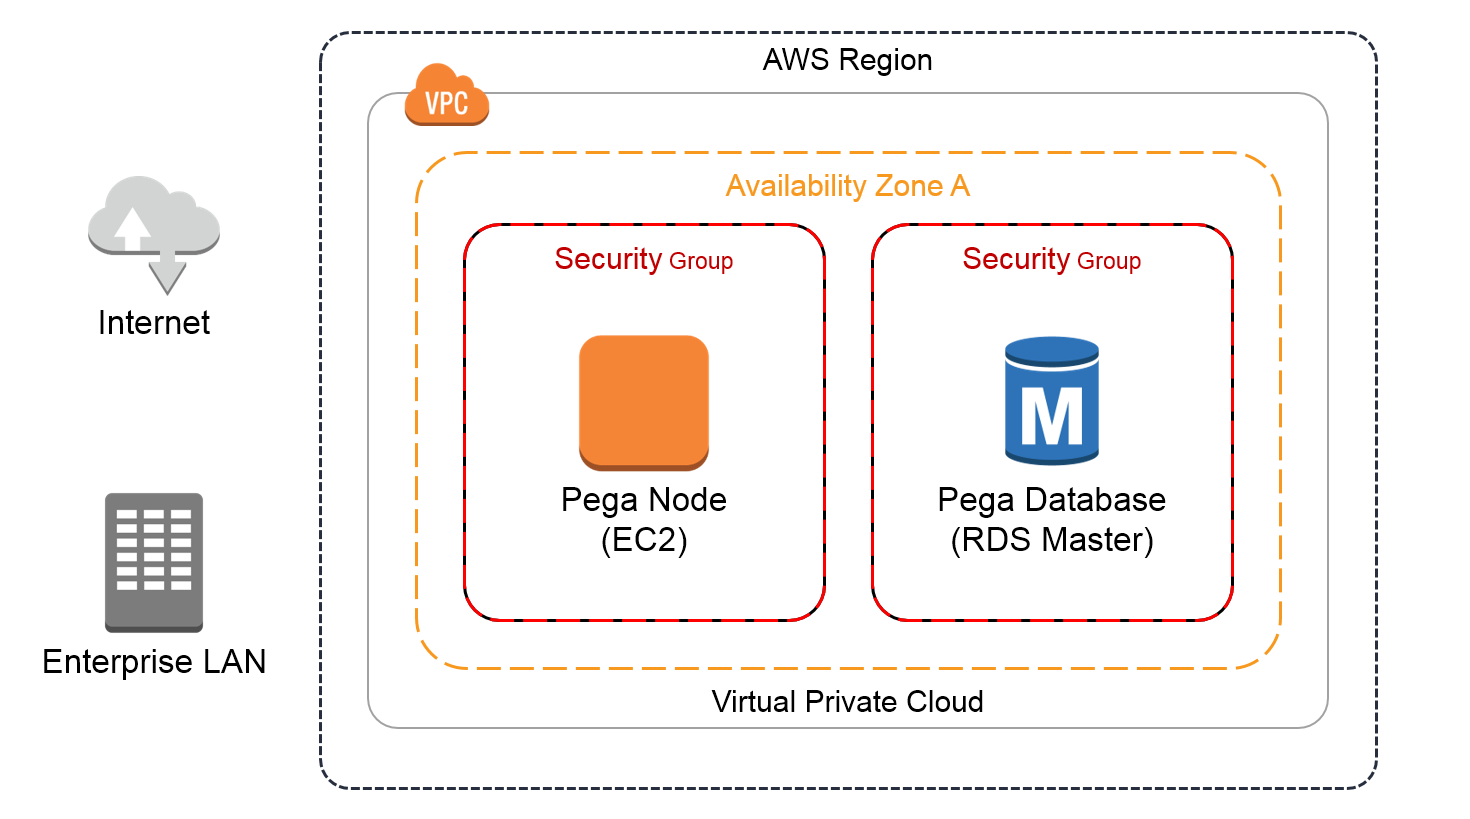 Development or test environment in one AWS region.  There are separate Security groups for the single Pega Platform EC2 instance and the Pega Platform database.  Both security groups are in the same AWS Availability zone.